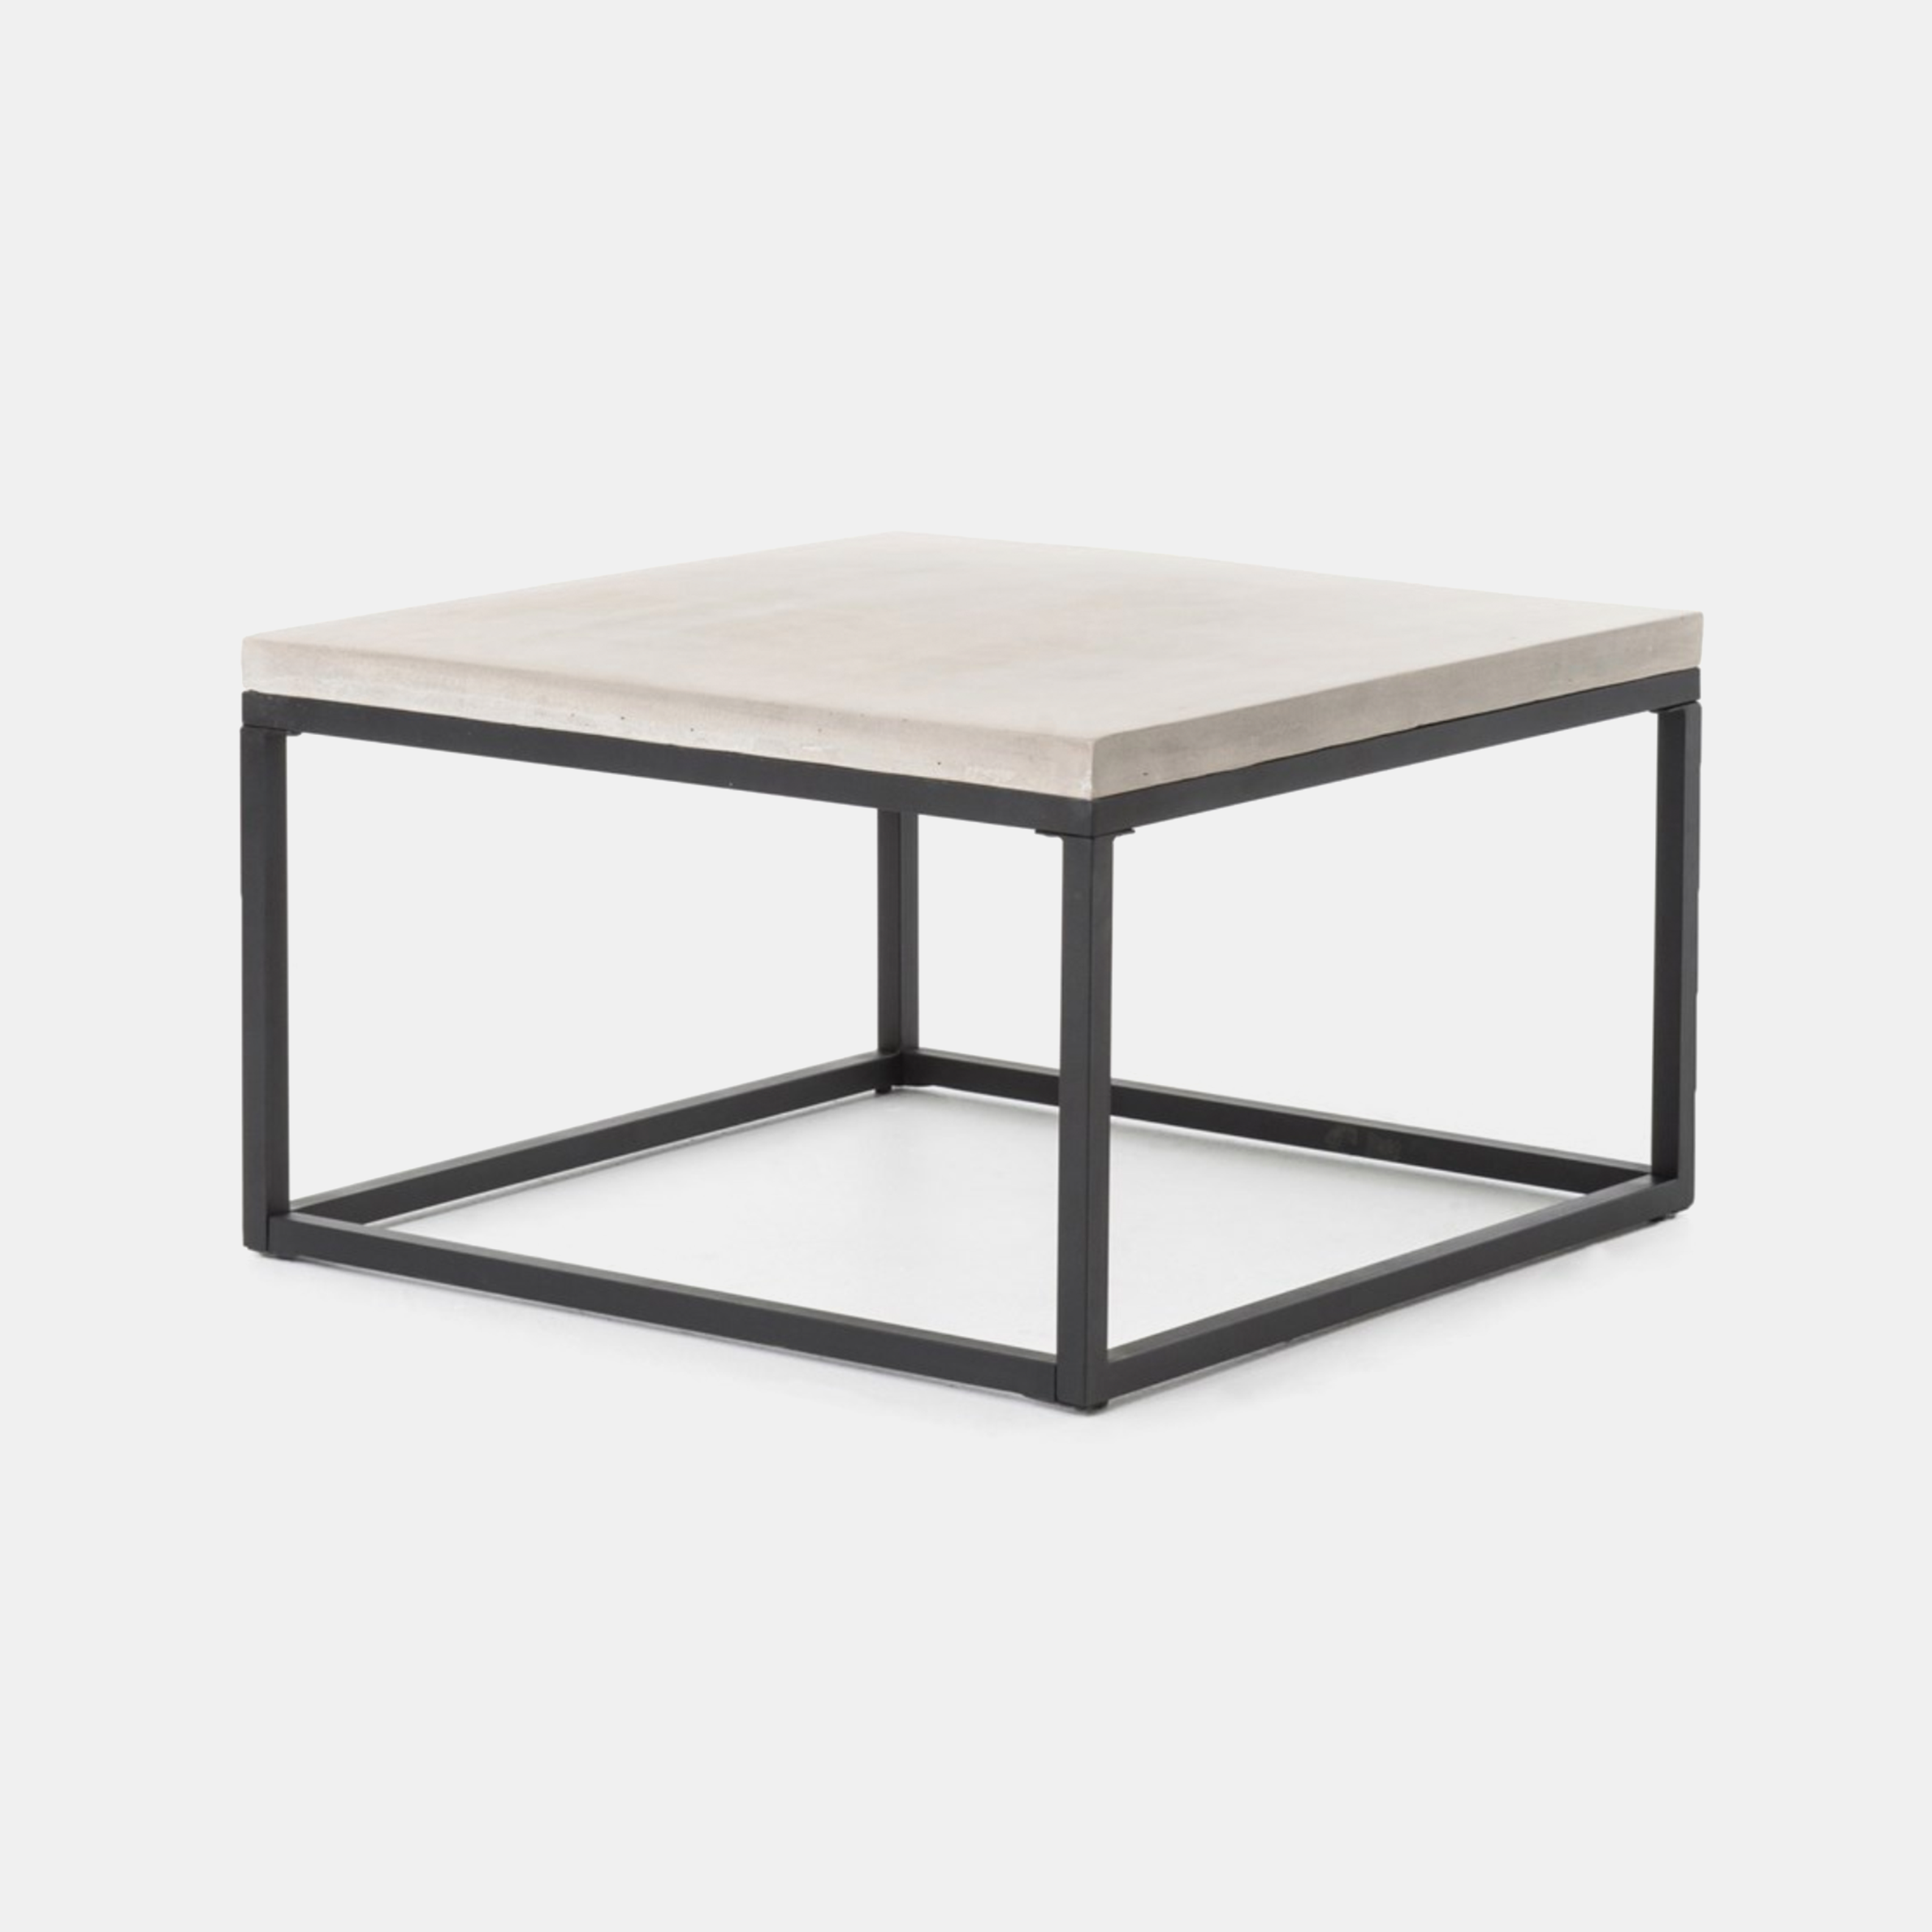 "Maximus Coffee Table  29.50""w x 29.50""d x 17.25""h 39.25""w x 19.75""d x 17.25""h Concrete top and iron base. SKU1192FHS"